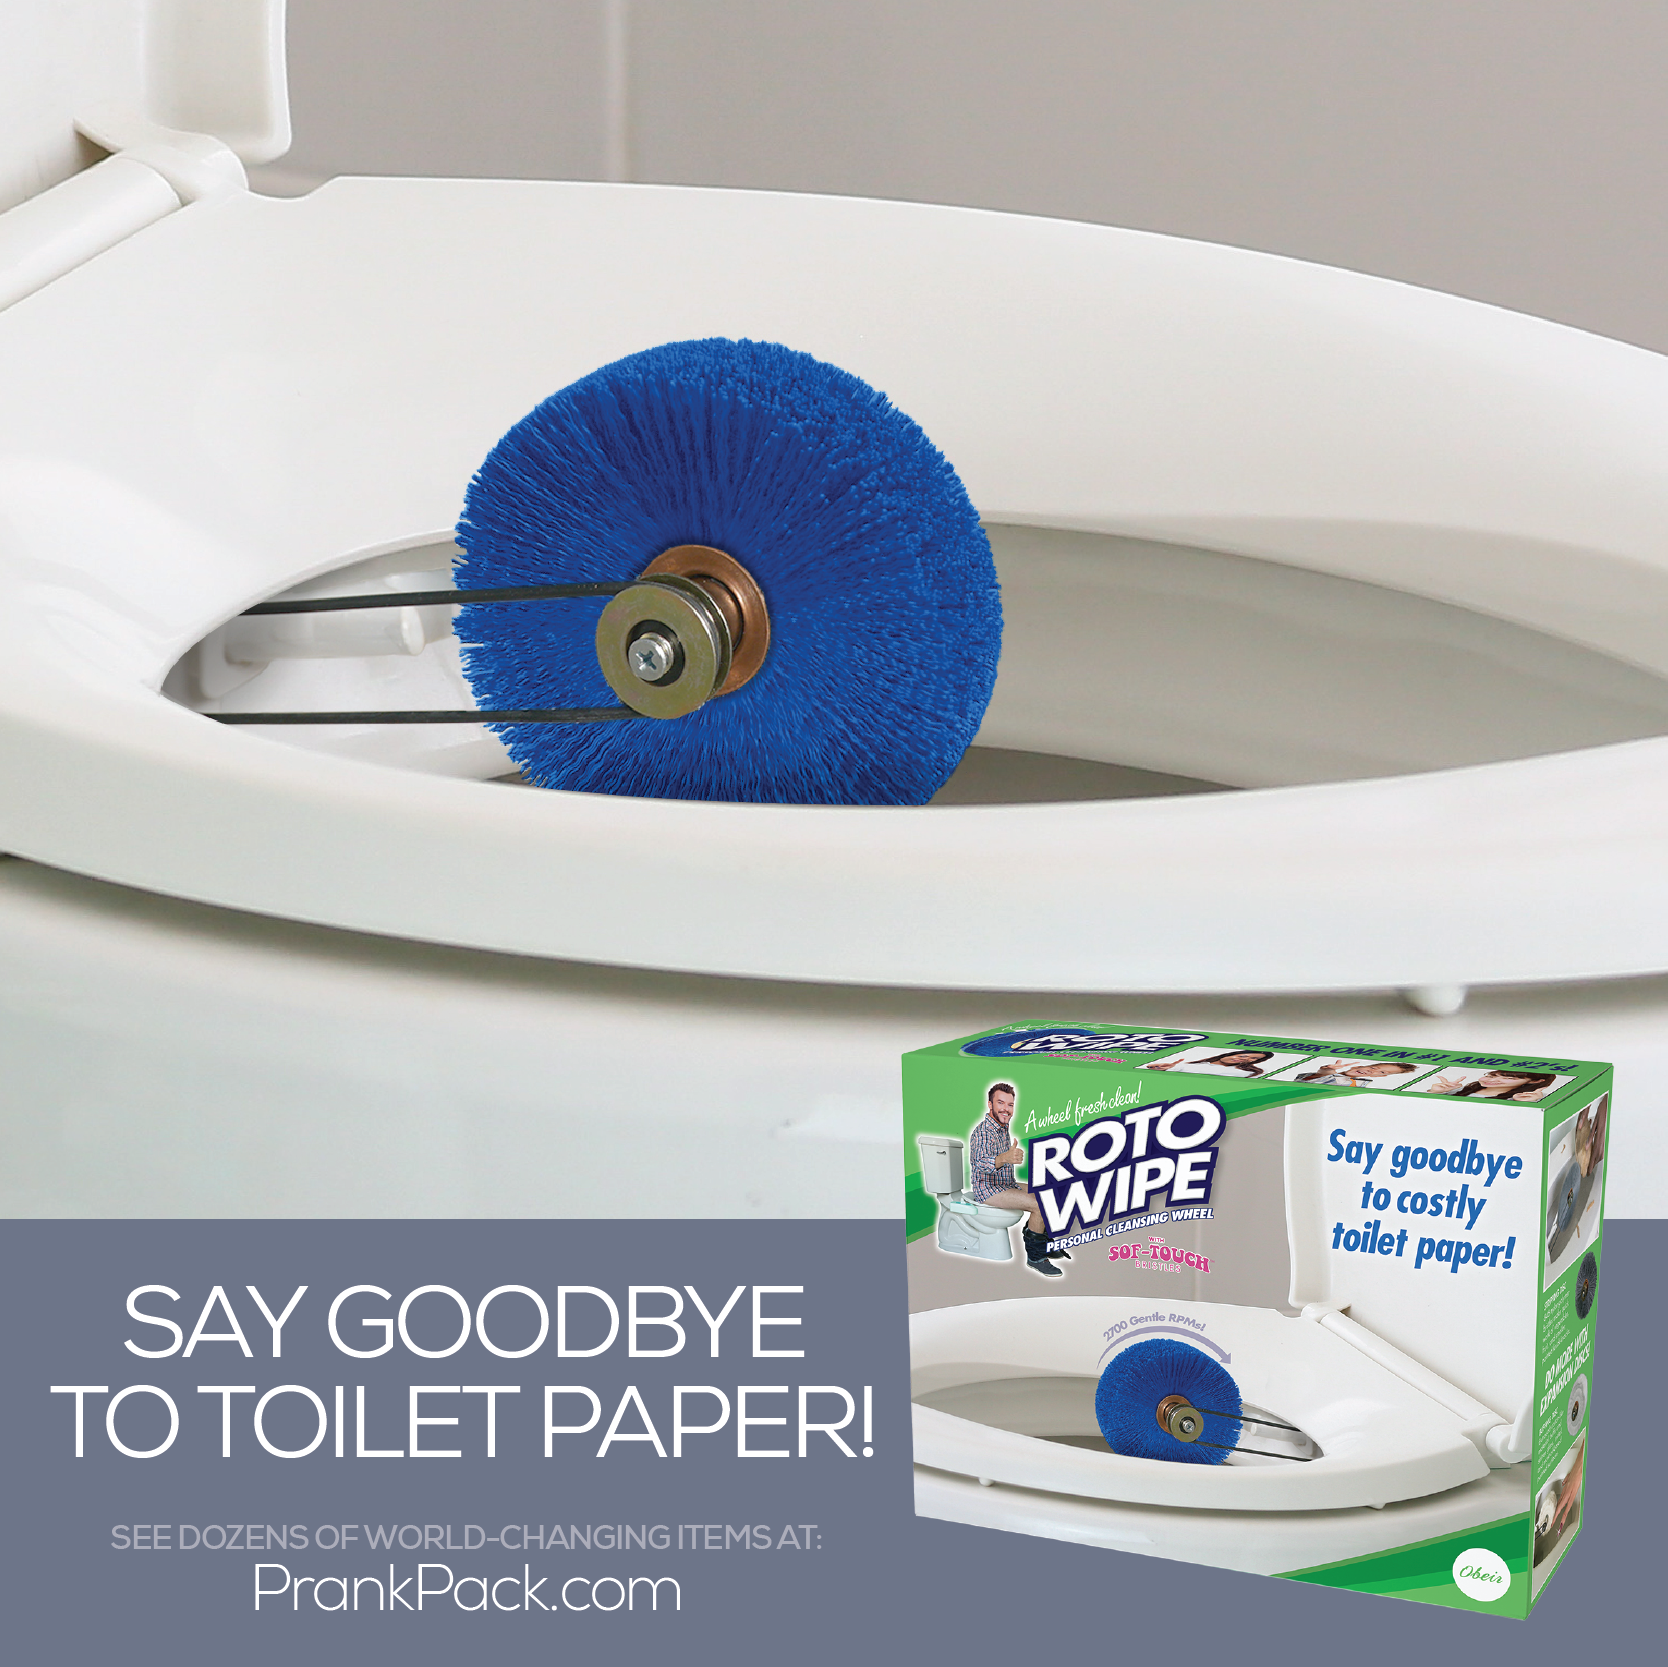 You Ll Never Buy Toilet Paper Again Thanks To Roto Wipe Link In Bio Toilet Bathroom Pranks Prankpack Gadget Funny Pictures Funny Signs Funny Memes